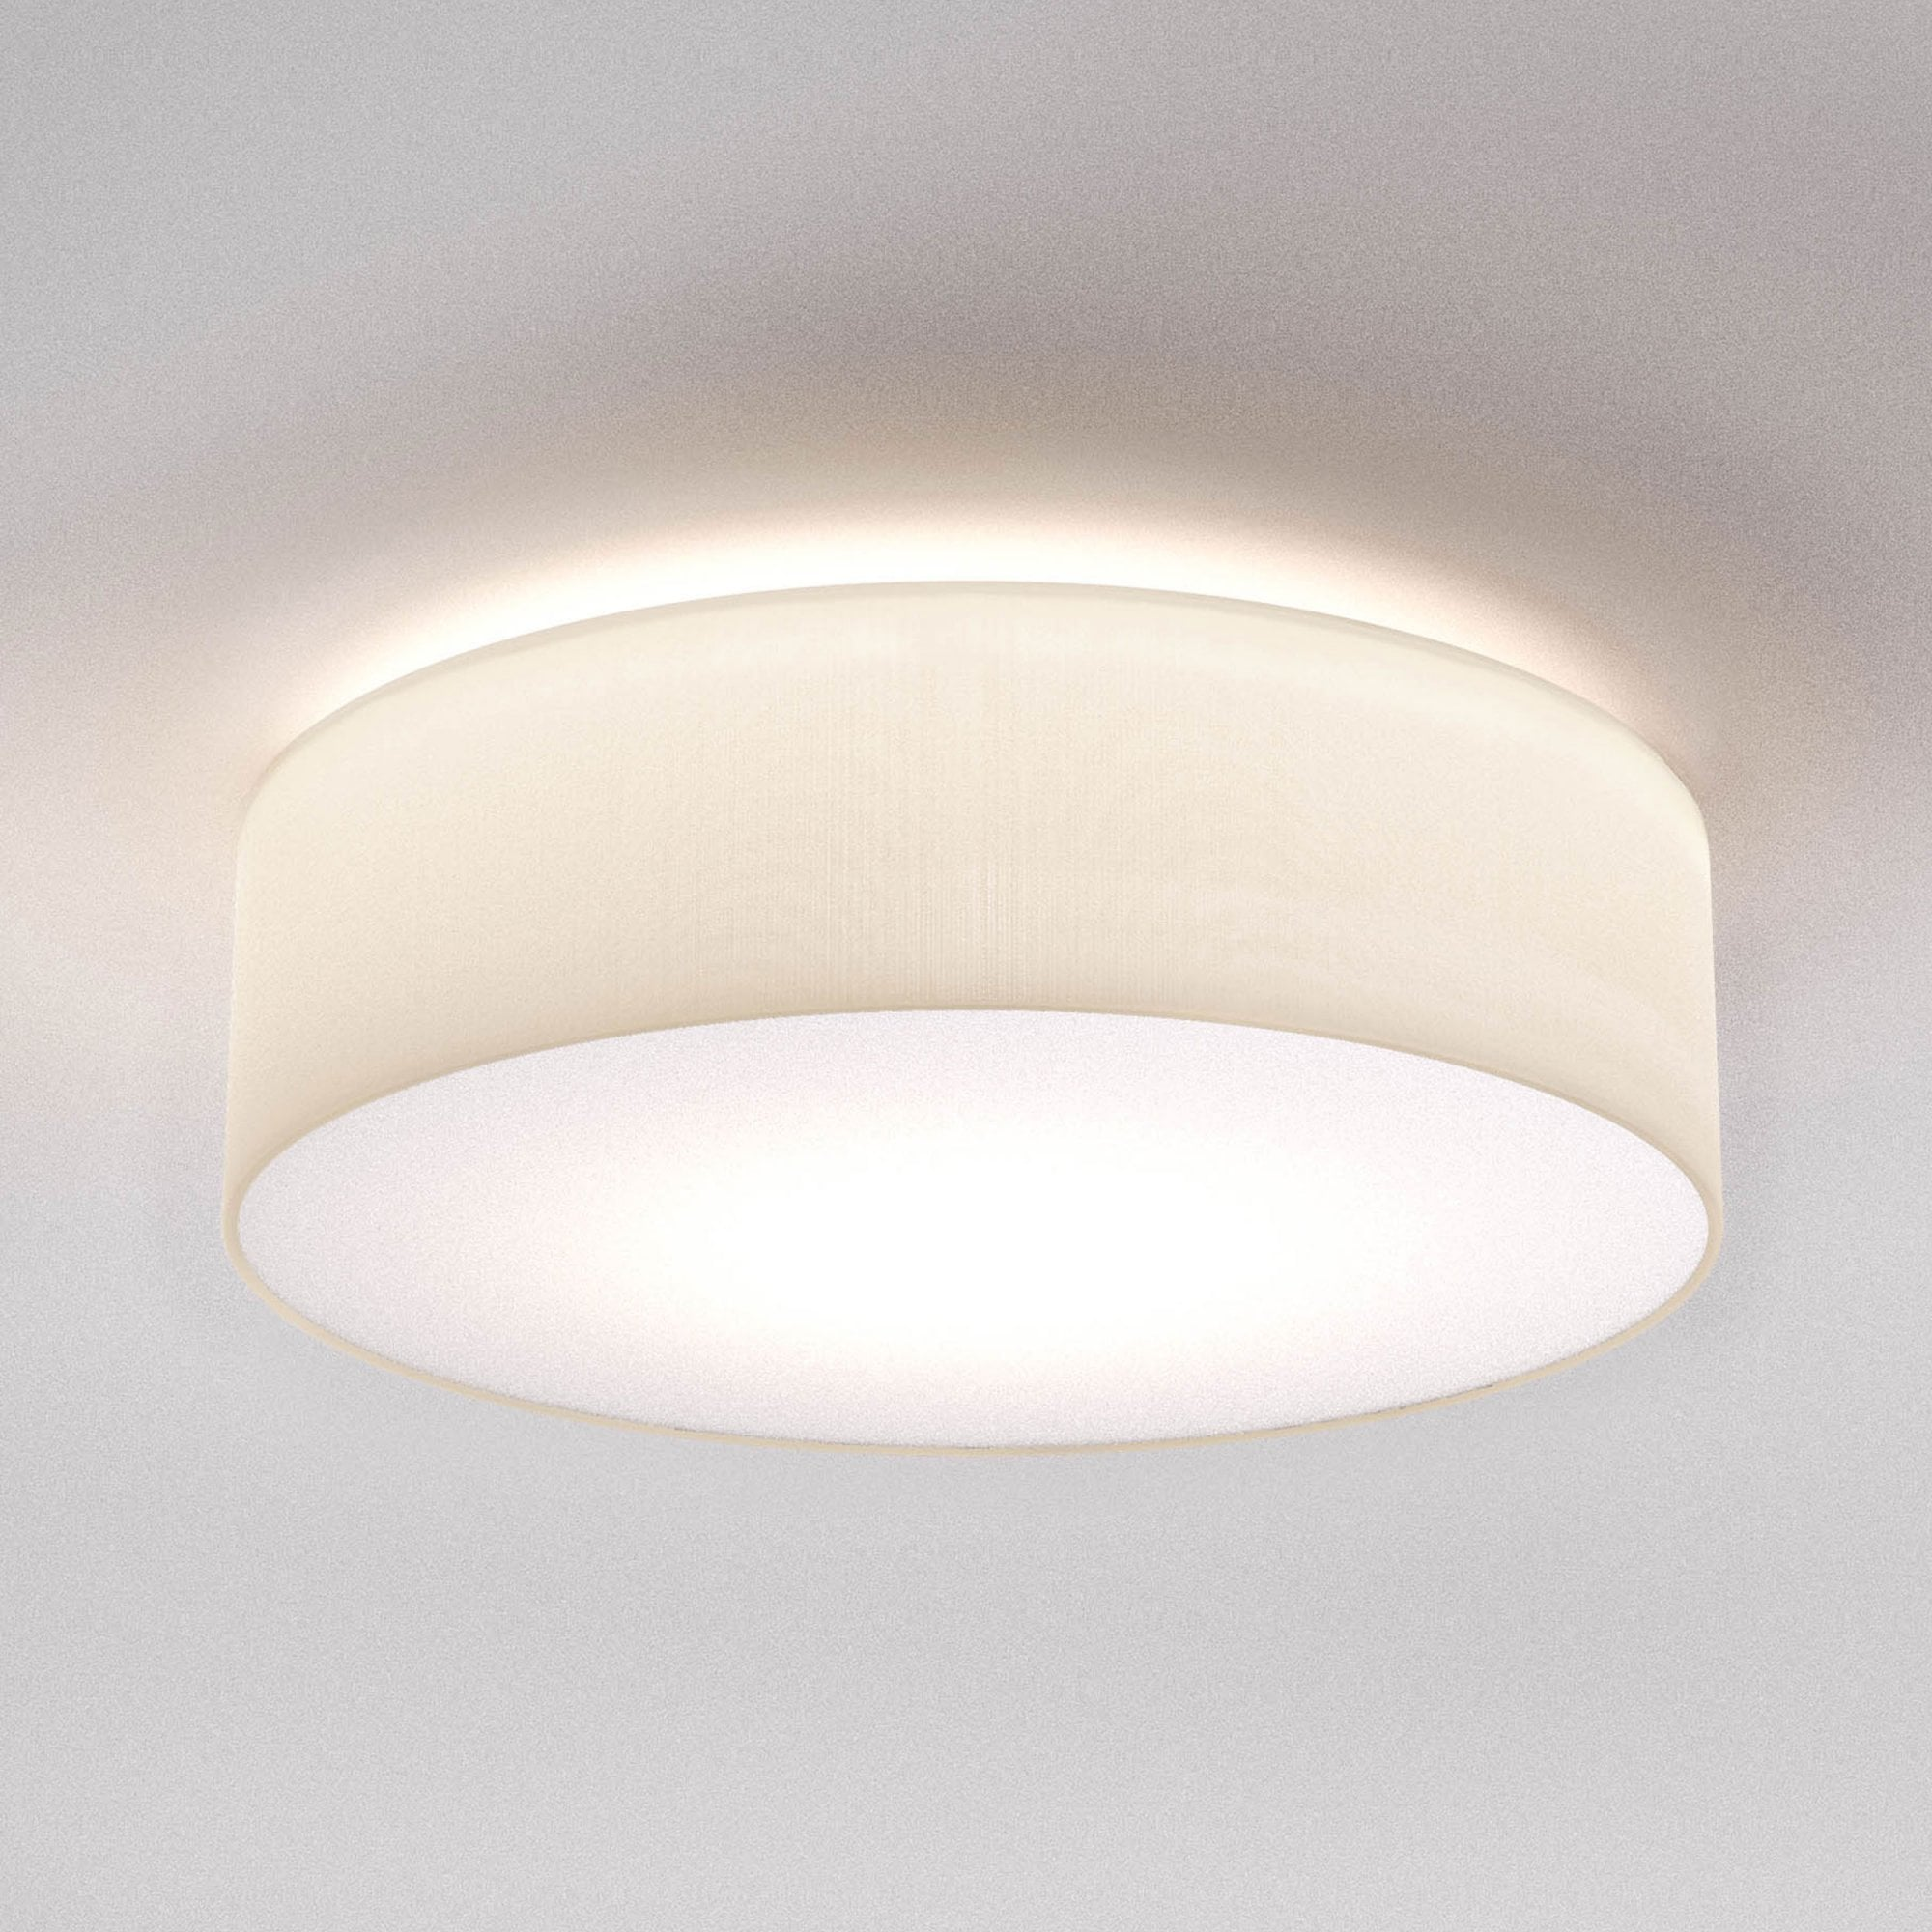 Astro Lighting 1421004 Cambria 480 White Fabric Ceiling Light